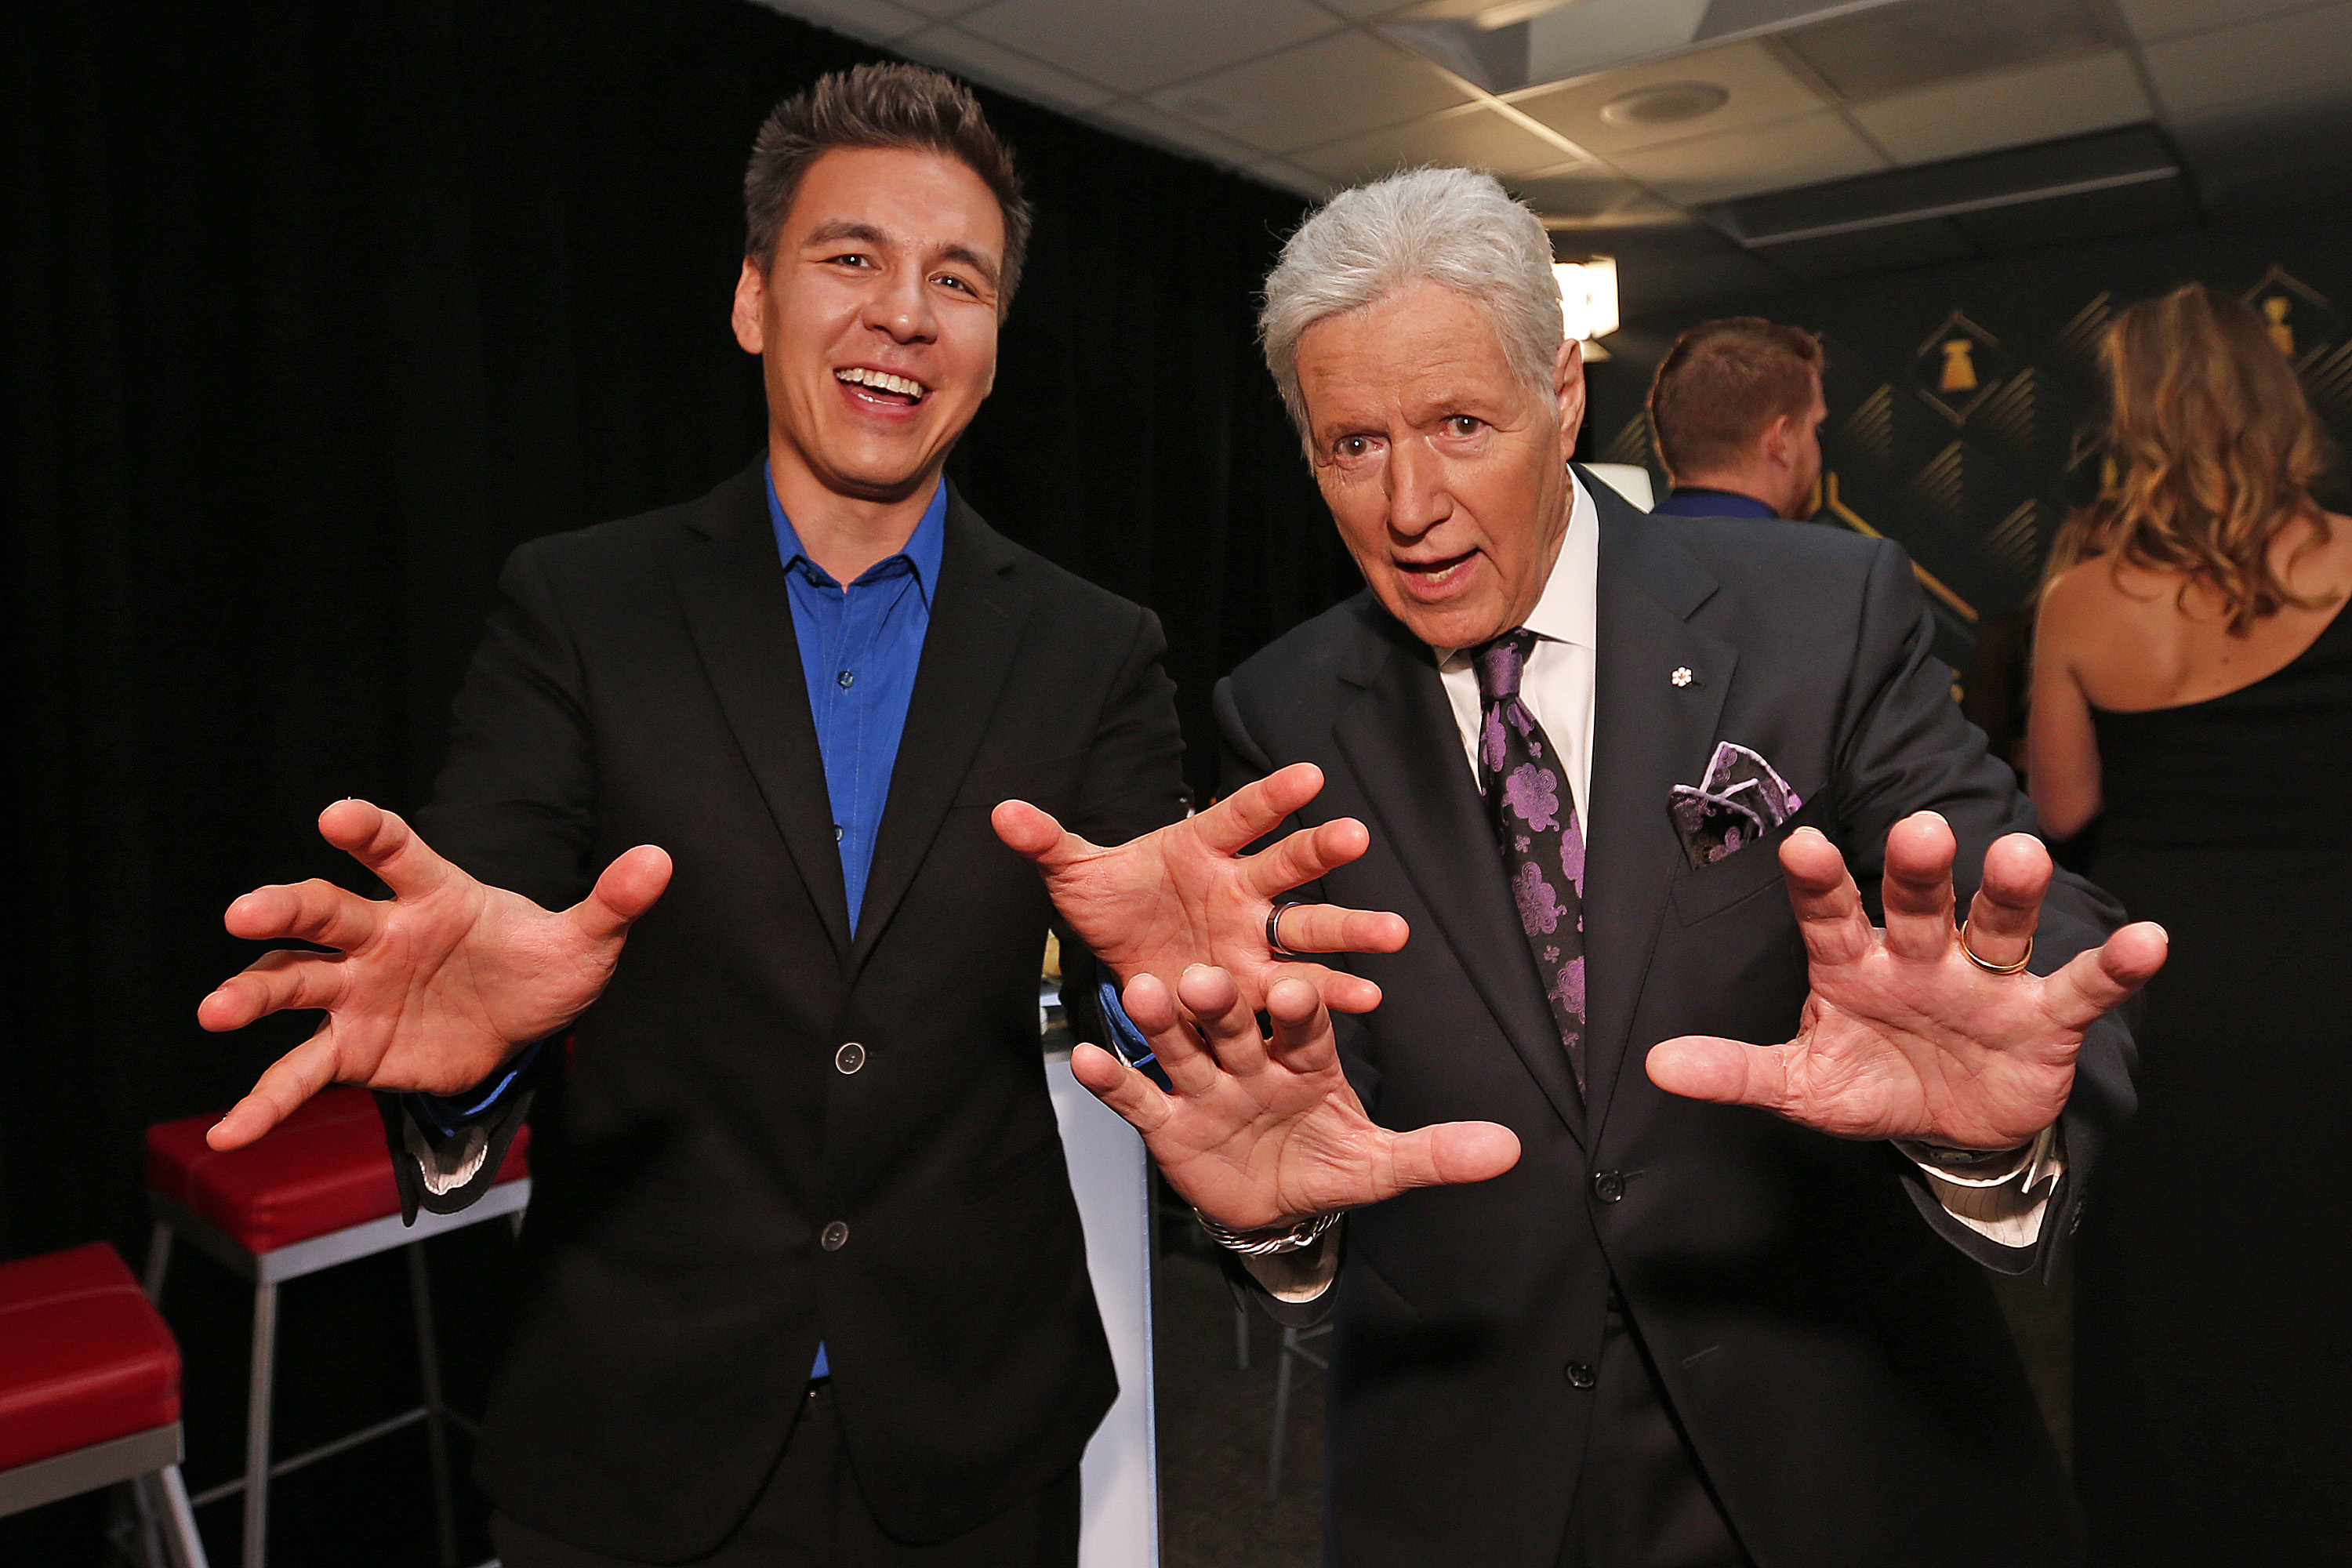 Alex Trebek Said He Won't Discuss Who His 'Jeopardy!' Successor Should Be But Also Said He'd Love For Betty White To Takeover